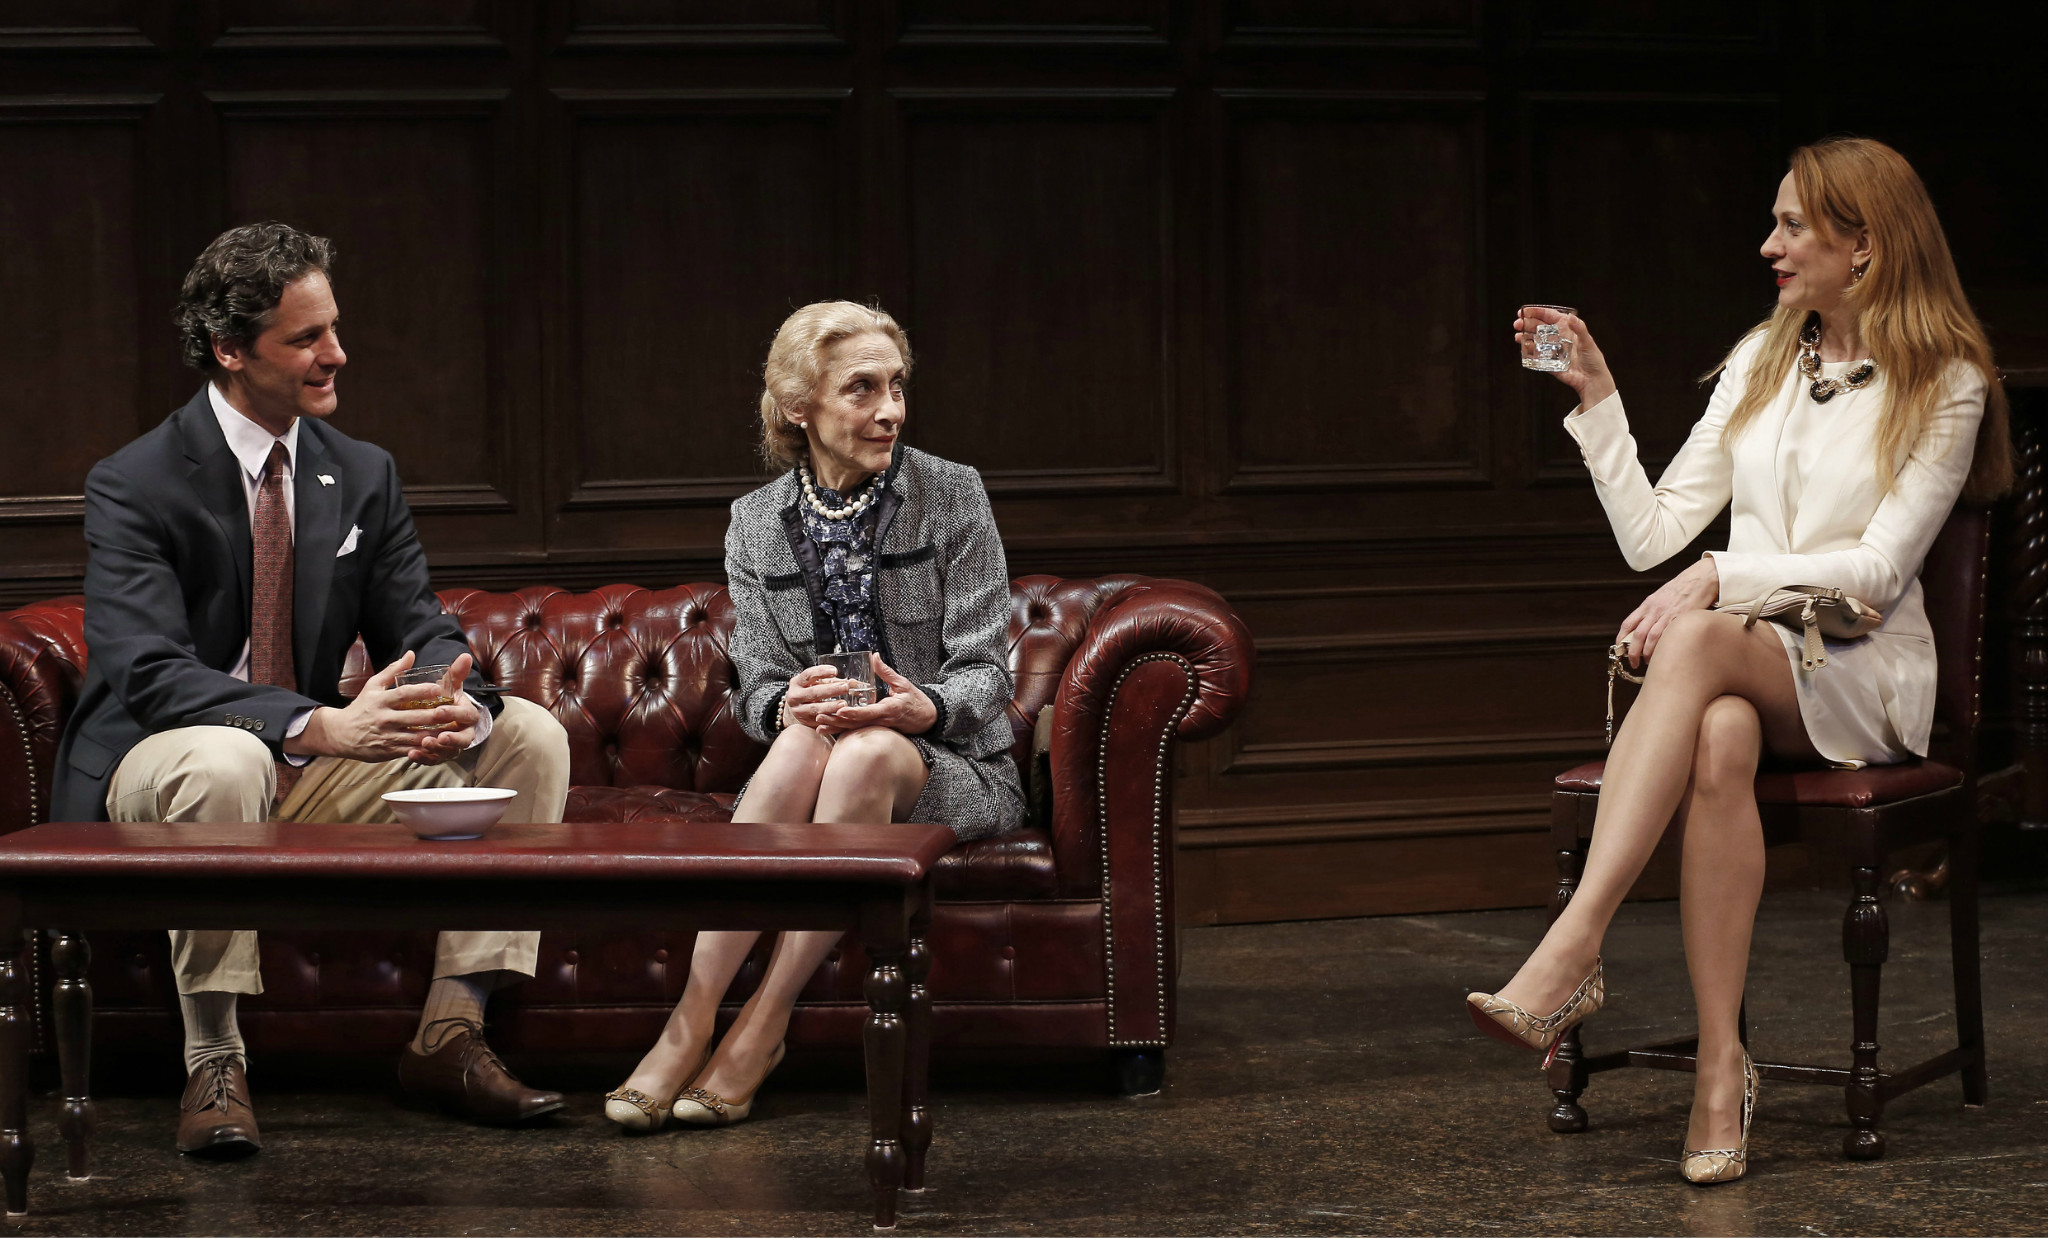 Peter Rini, Laura Esterman, and Marsha Dietlein Bennett in The Old Boy 2013 Photo: Carol Rosegg